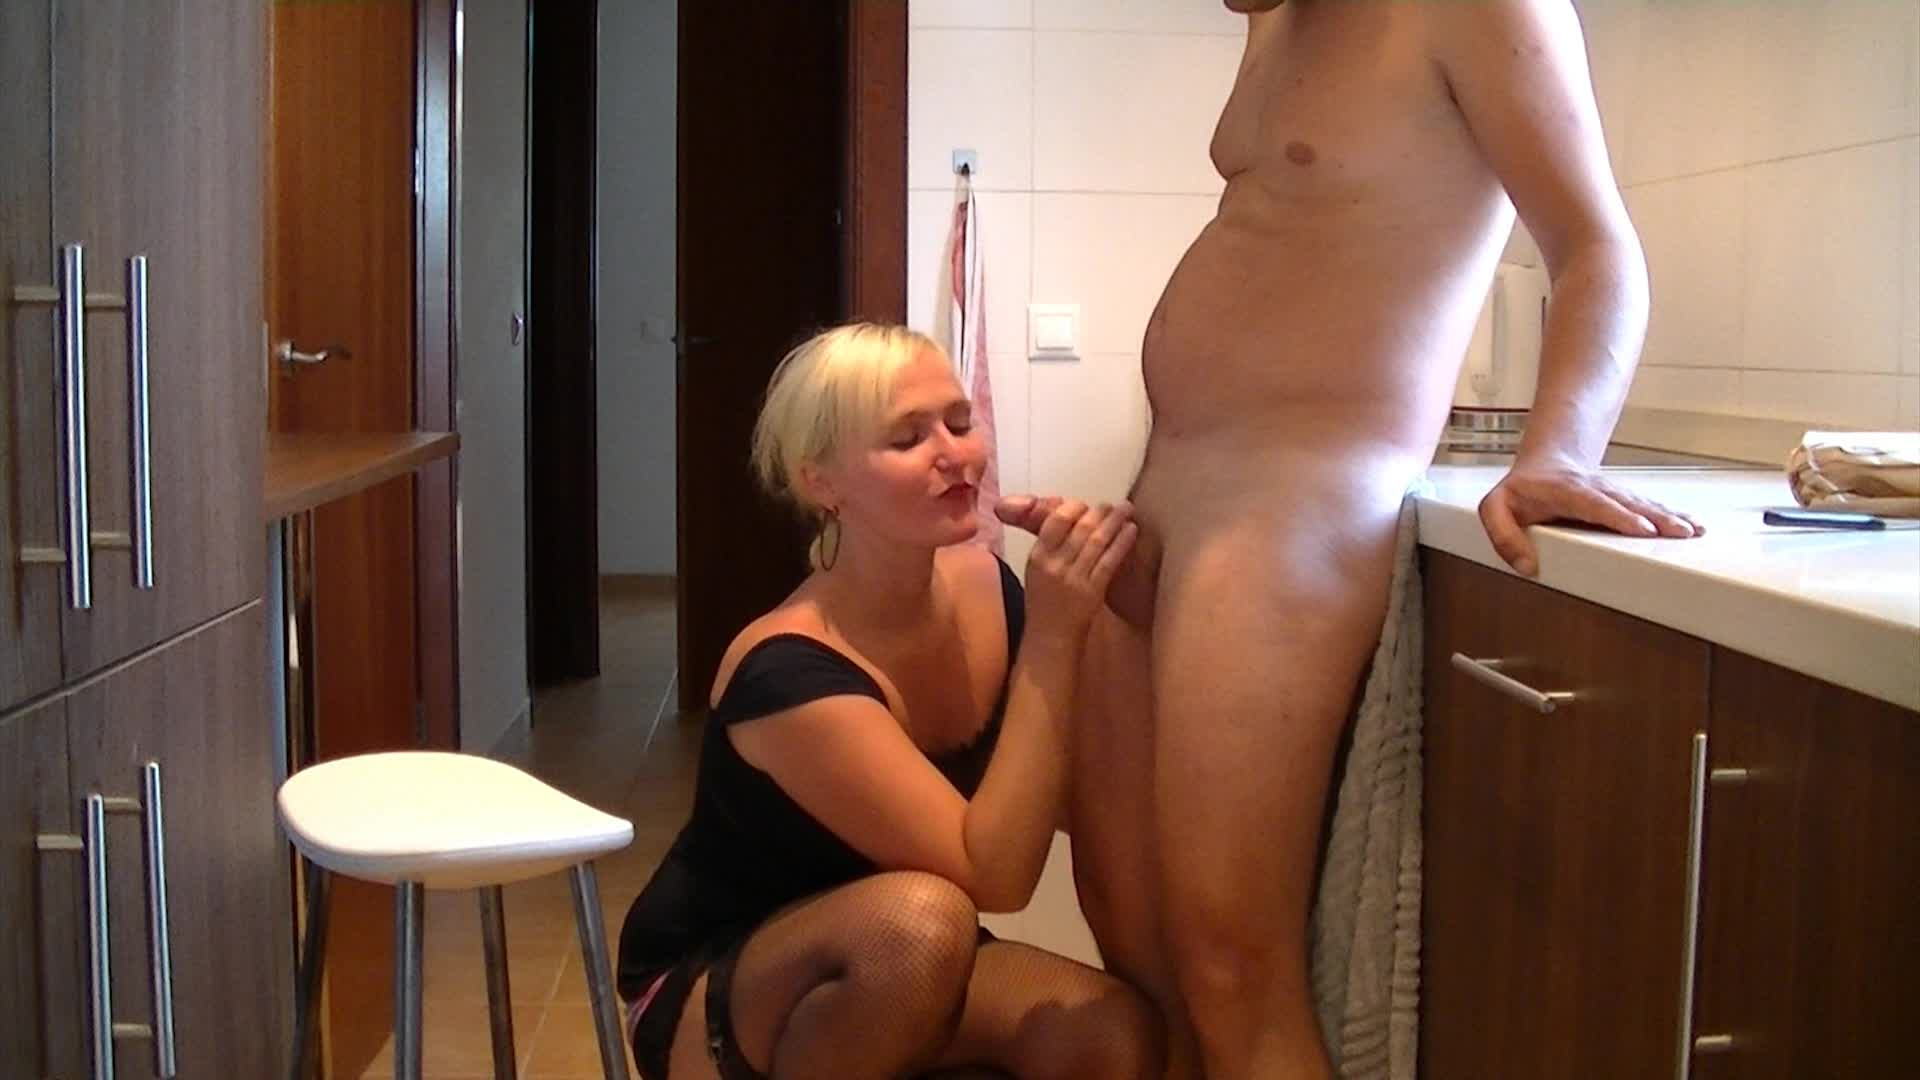 Oma Fickt In Der Küche Sex Porr Videos Gratis Erotik Film